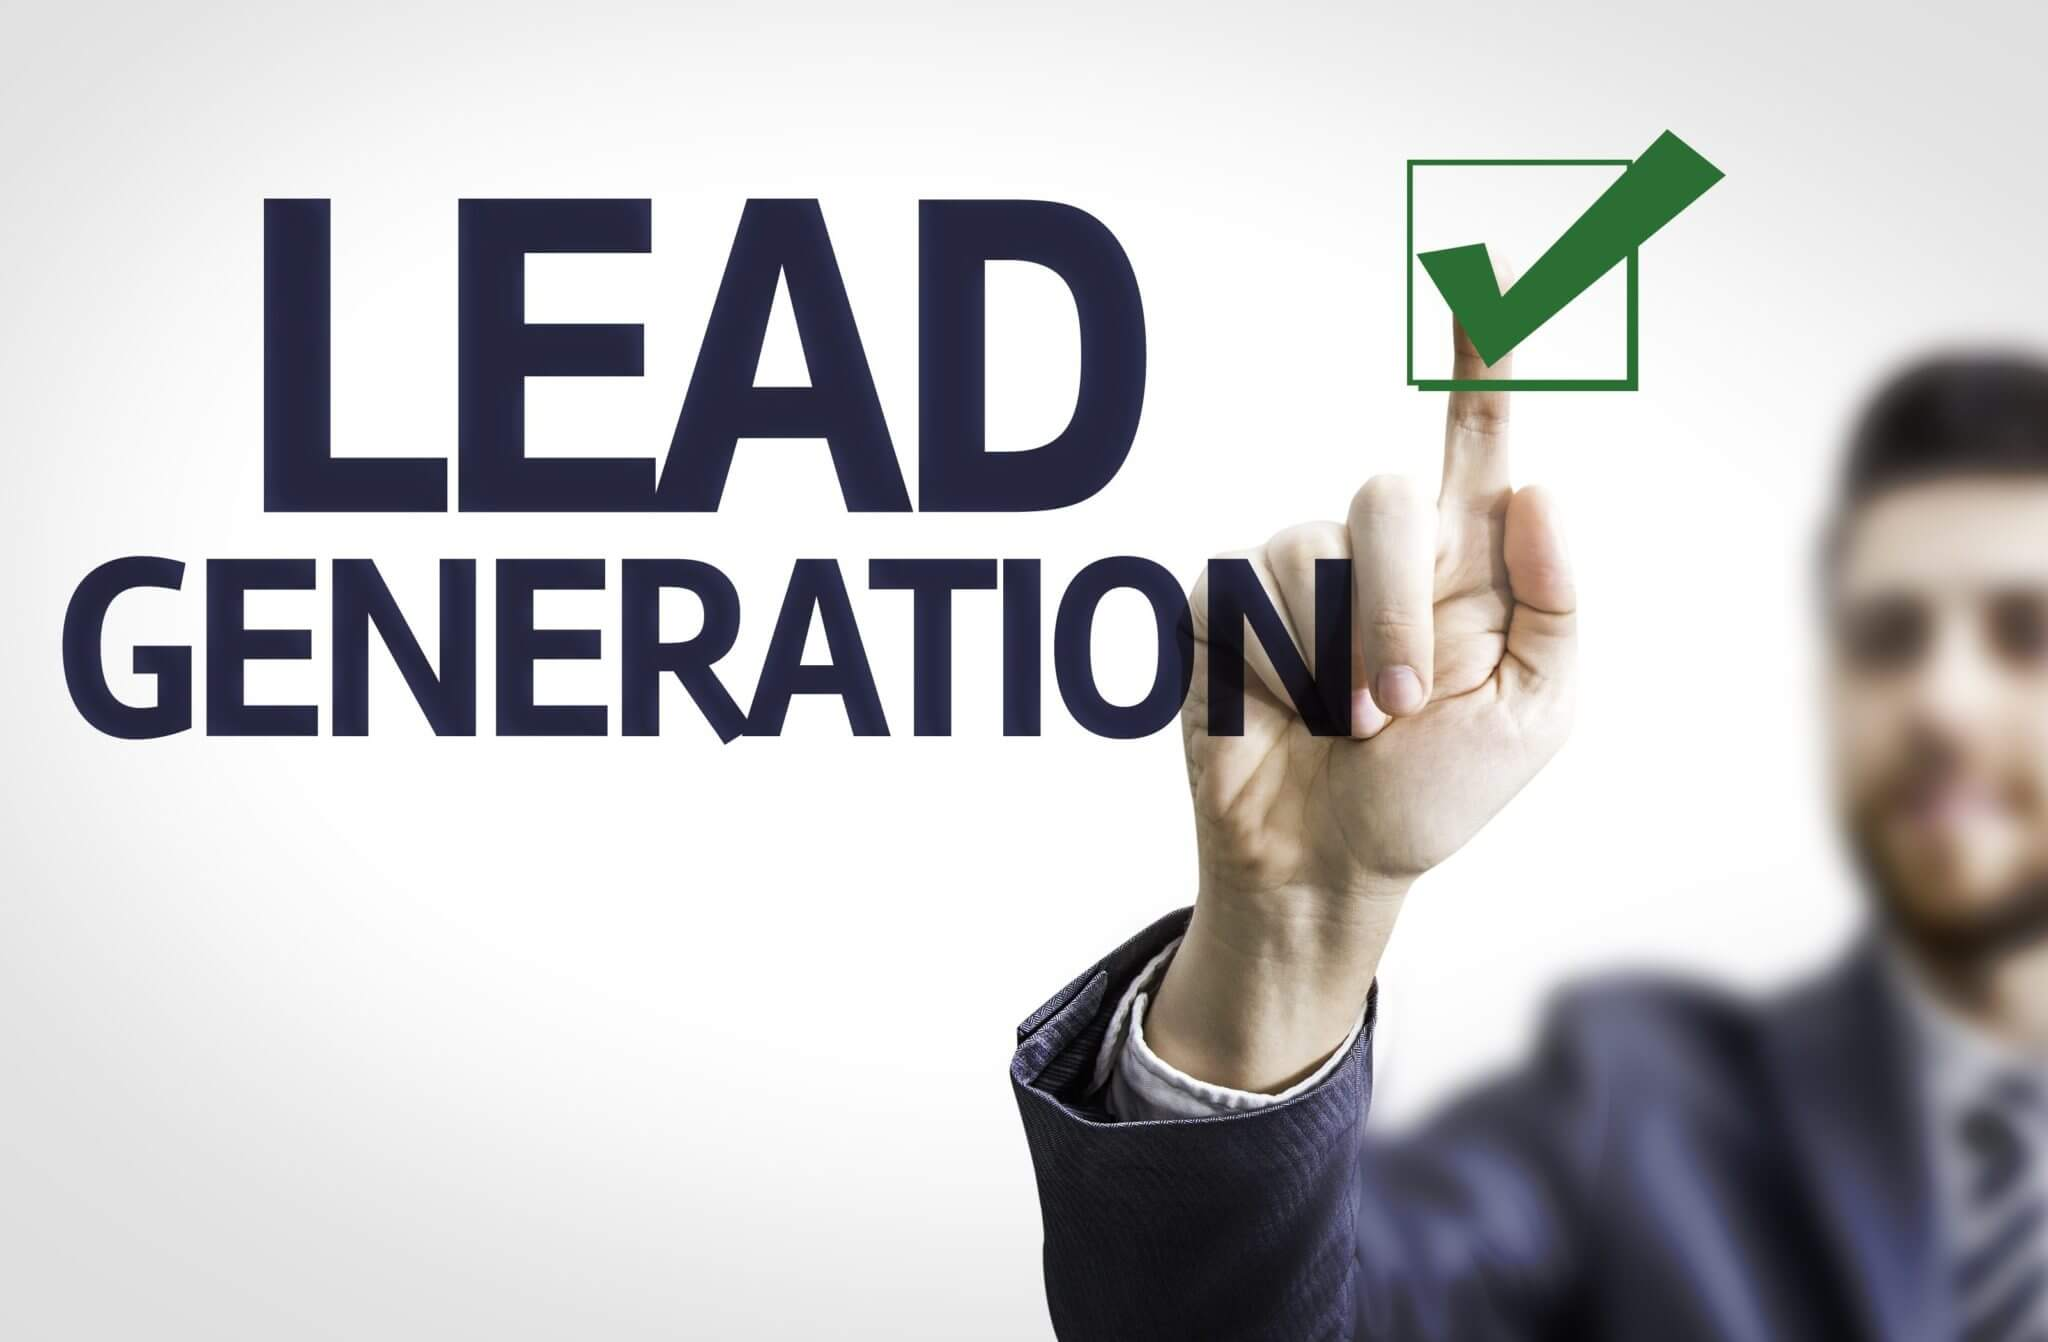 54 - lead generation - entreprenew inc - seo and marketing agency - wellington fl - west palm beach fl - seo, mobile marketing, web design, mobile responsive, social media manangement